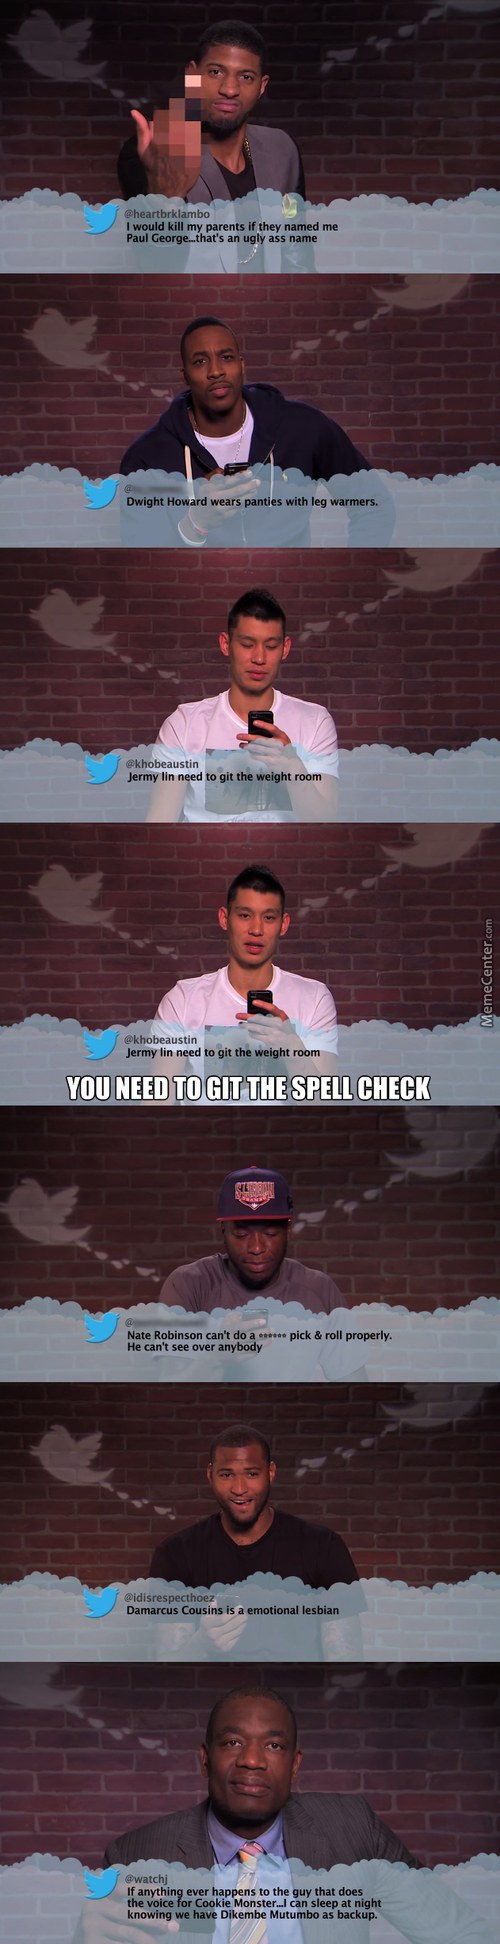 Mean Tweets Nba Edition, Just The Ones I Liked